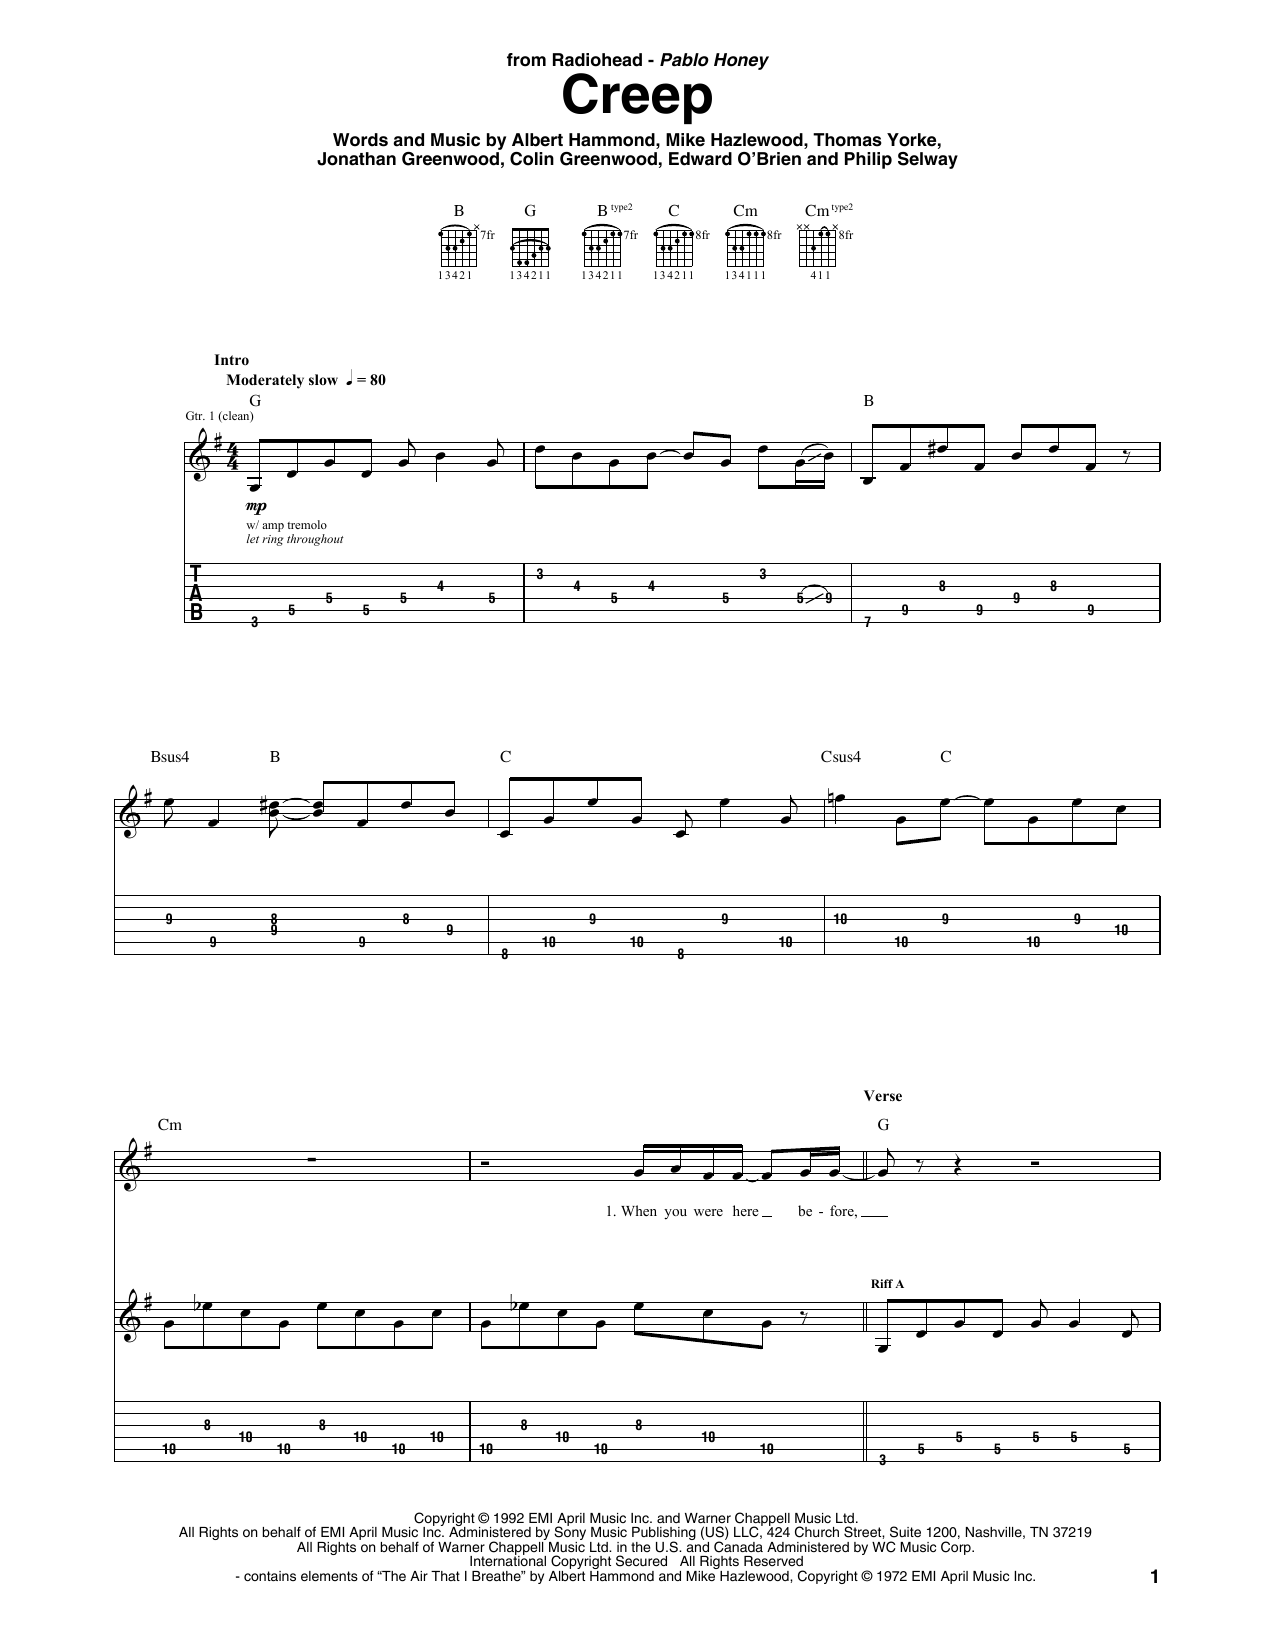 Creep | Radiohead | Guitar Tab